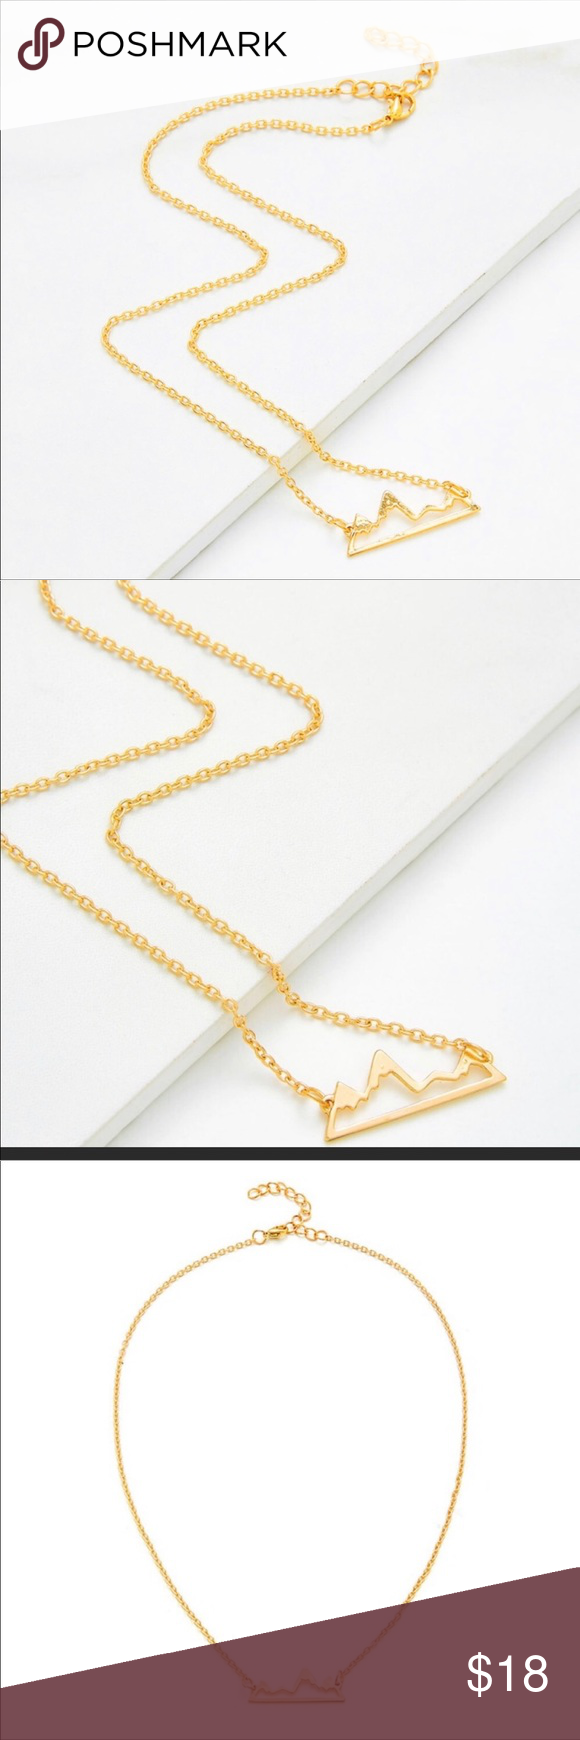 Photo of Gold Mountain Peak Dainty Necklace Beautiful gift for bff or to yourself! Perfec…